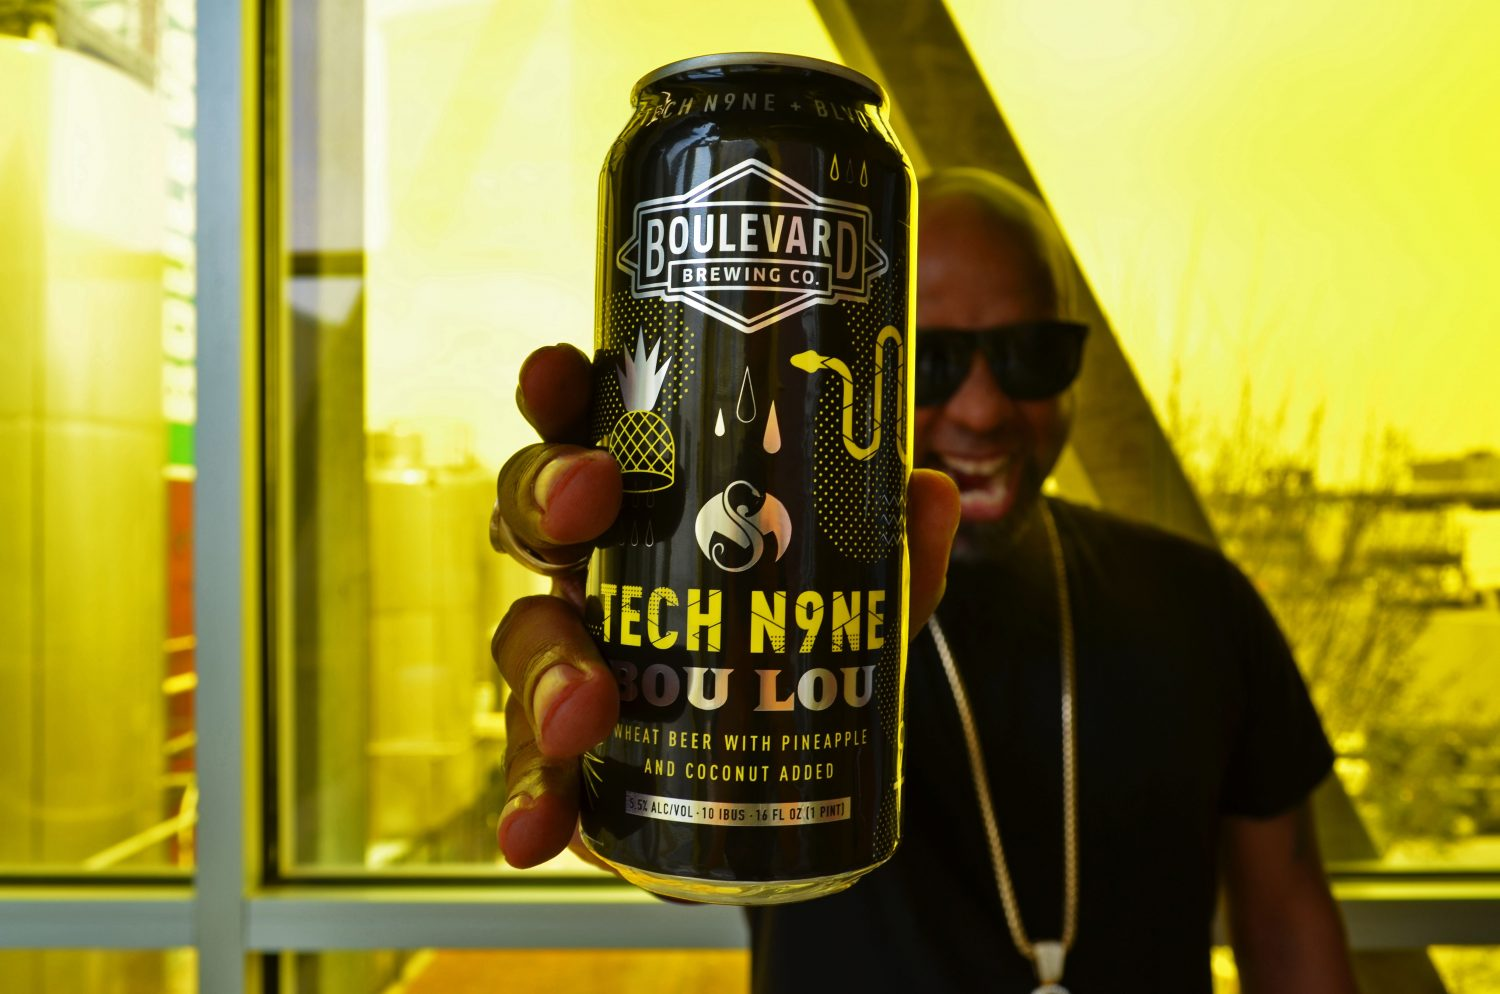 Boulevard and TechN9ne Brew Up a Party in a Can